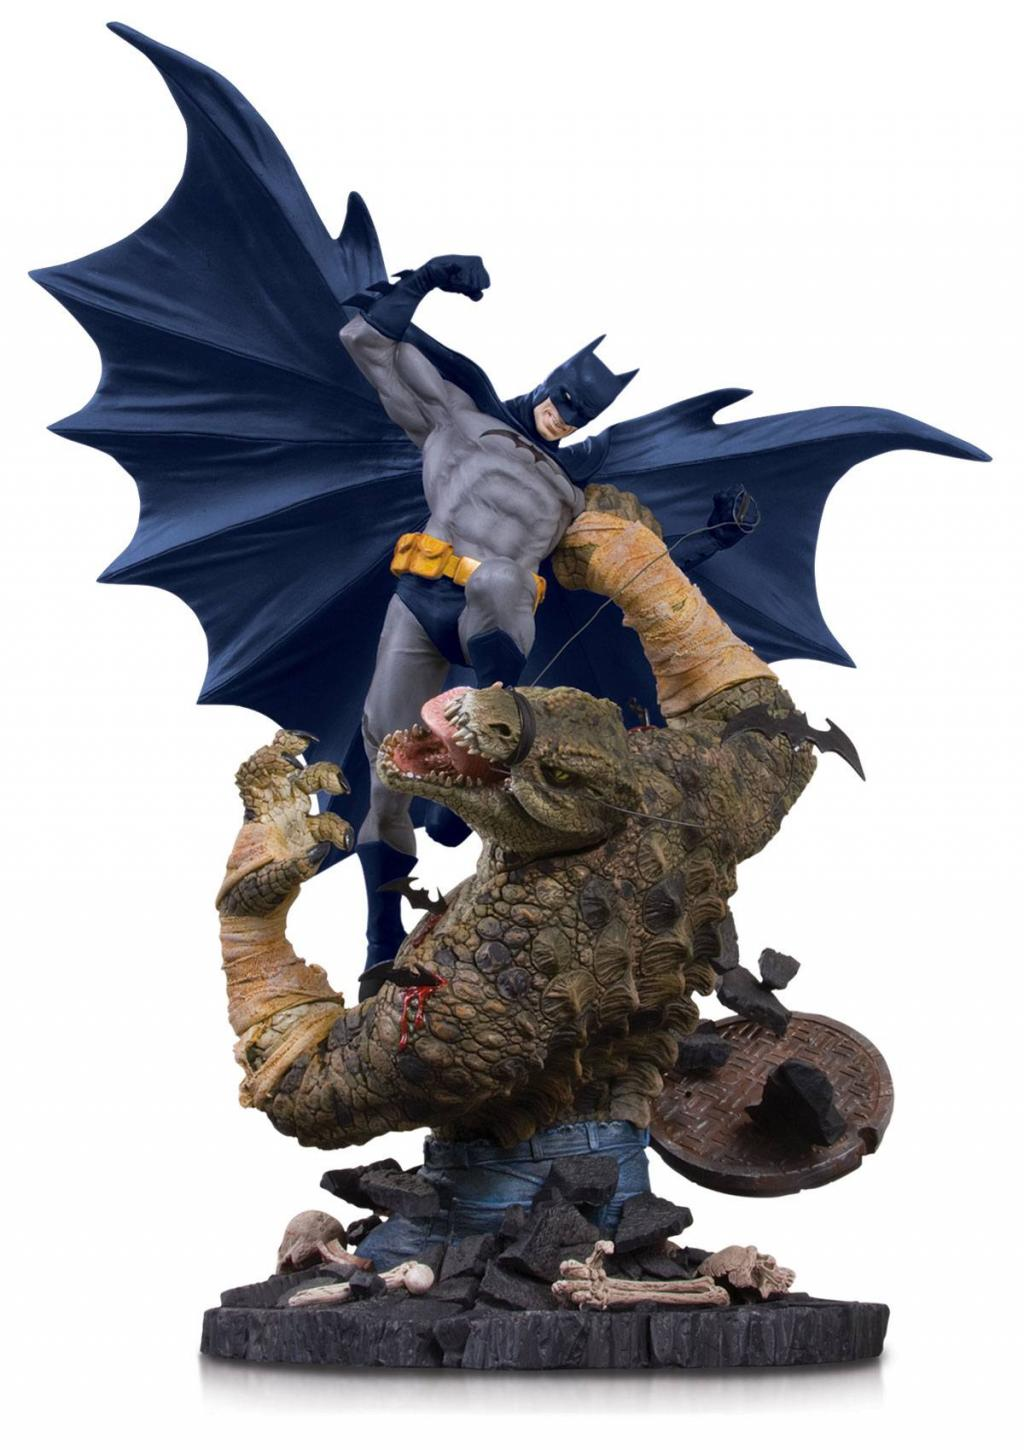 DC COMICS - Batman vs Killer Croc Mini Battle Statue - 21cm